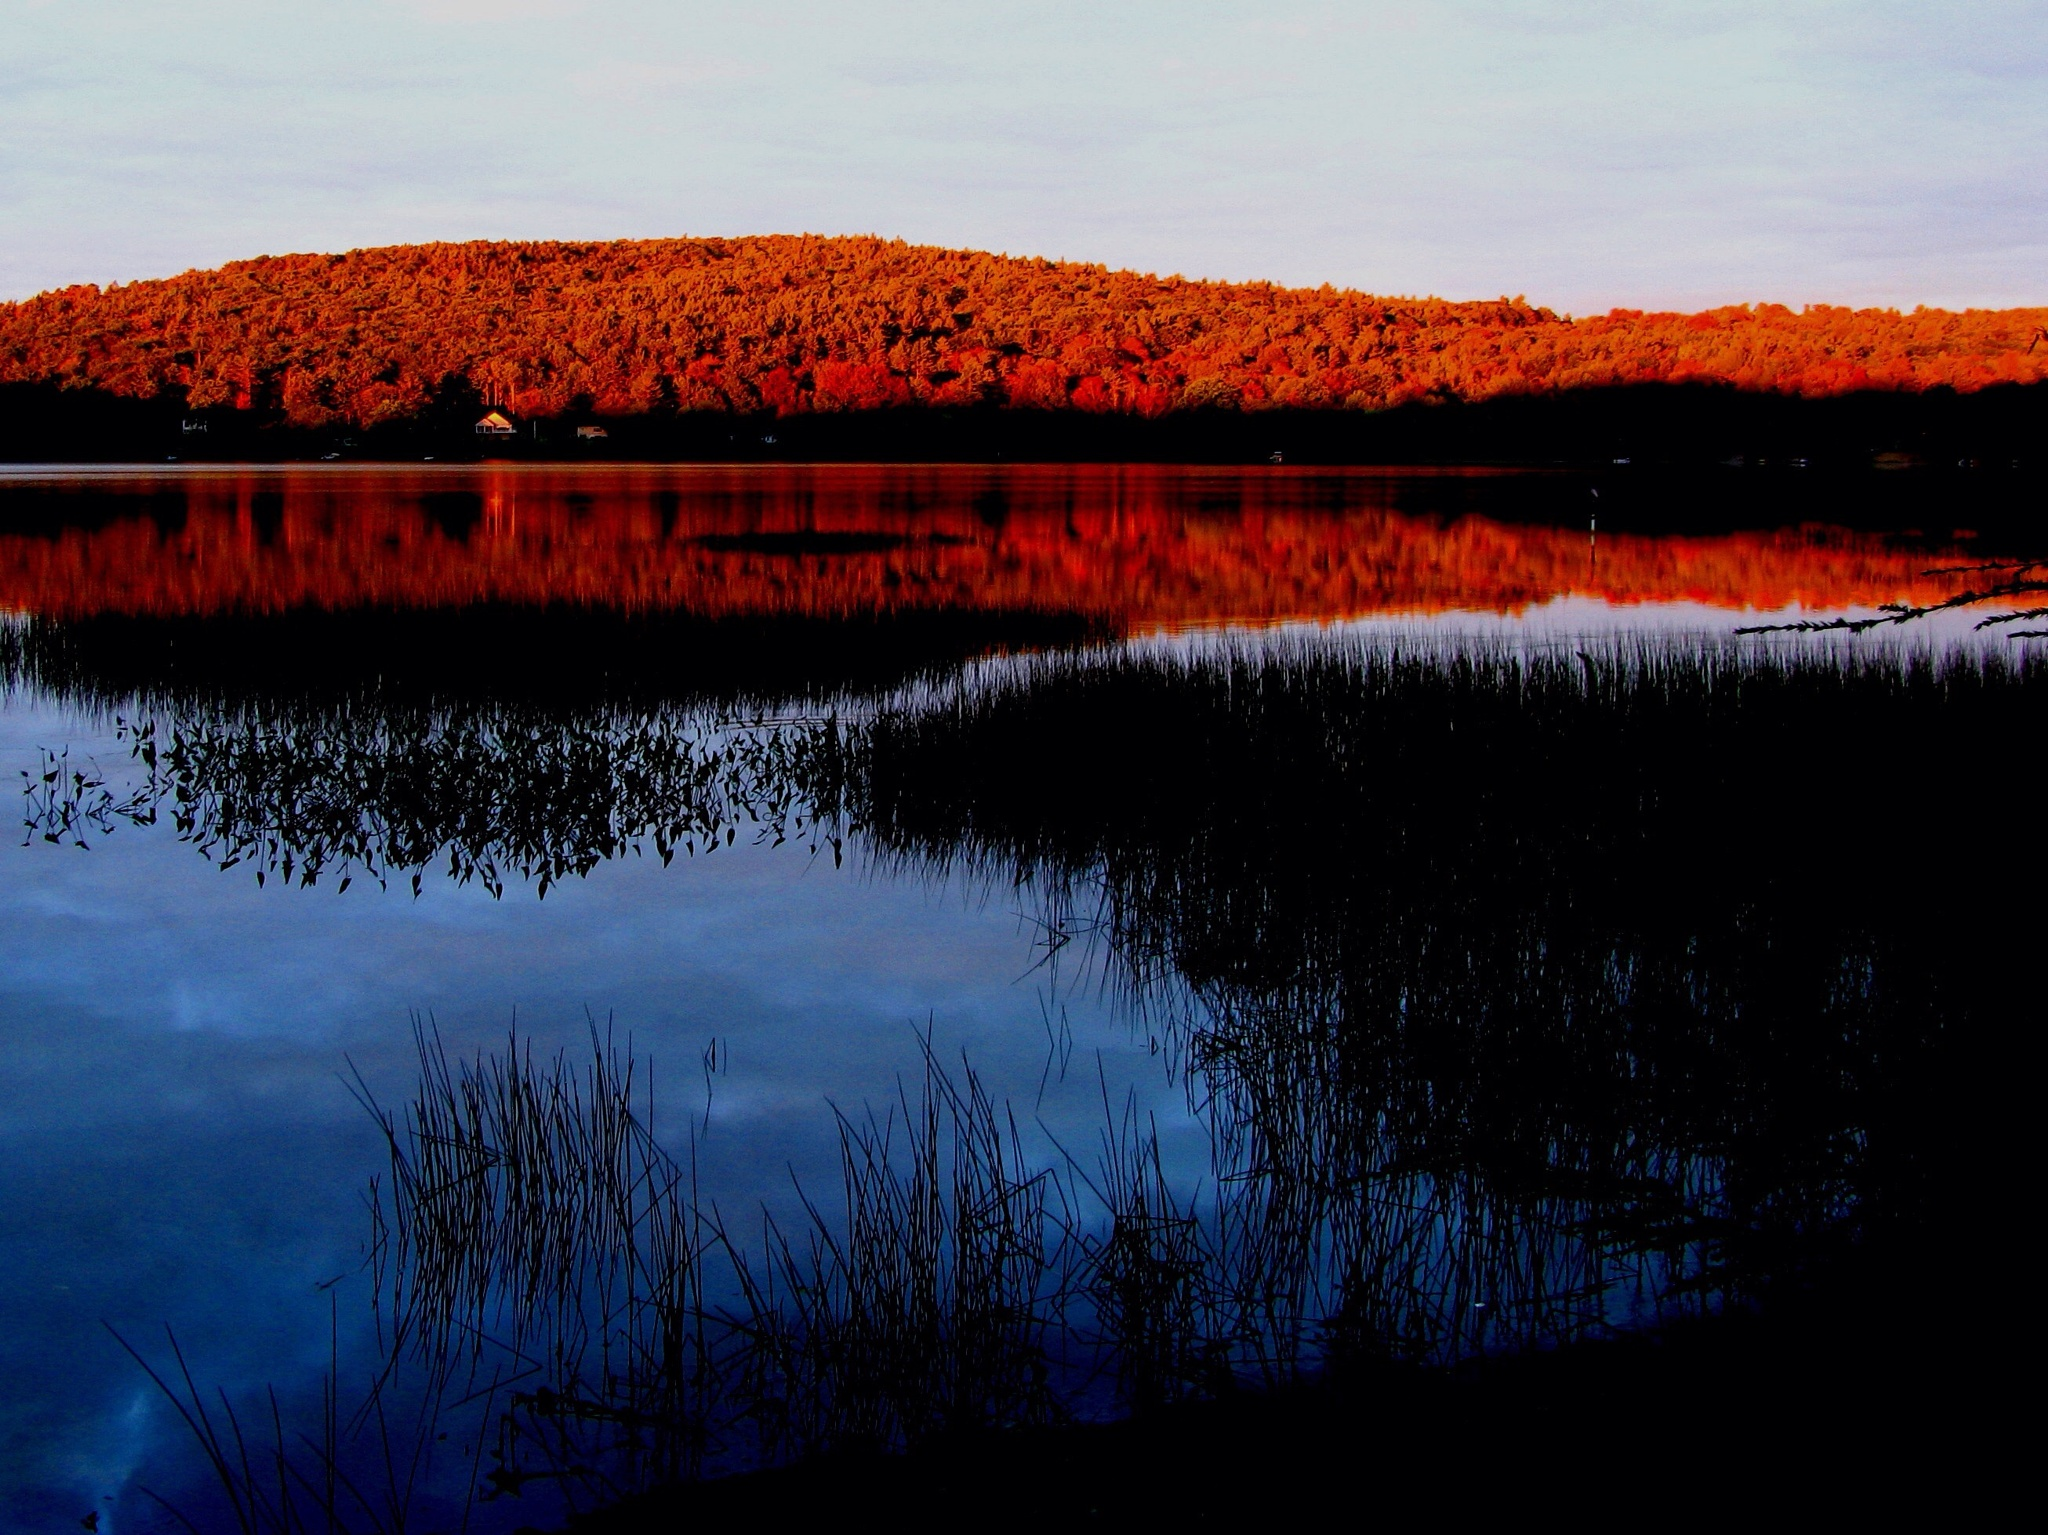 Autumn in New Hampshire by PamelaZ